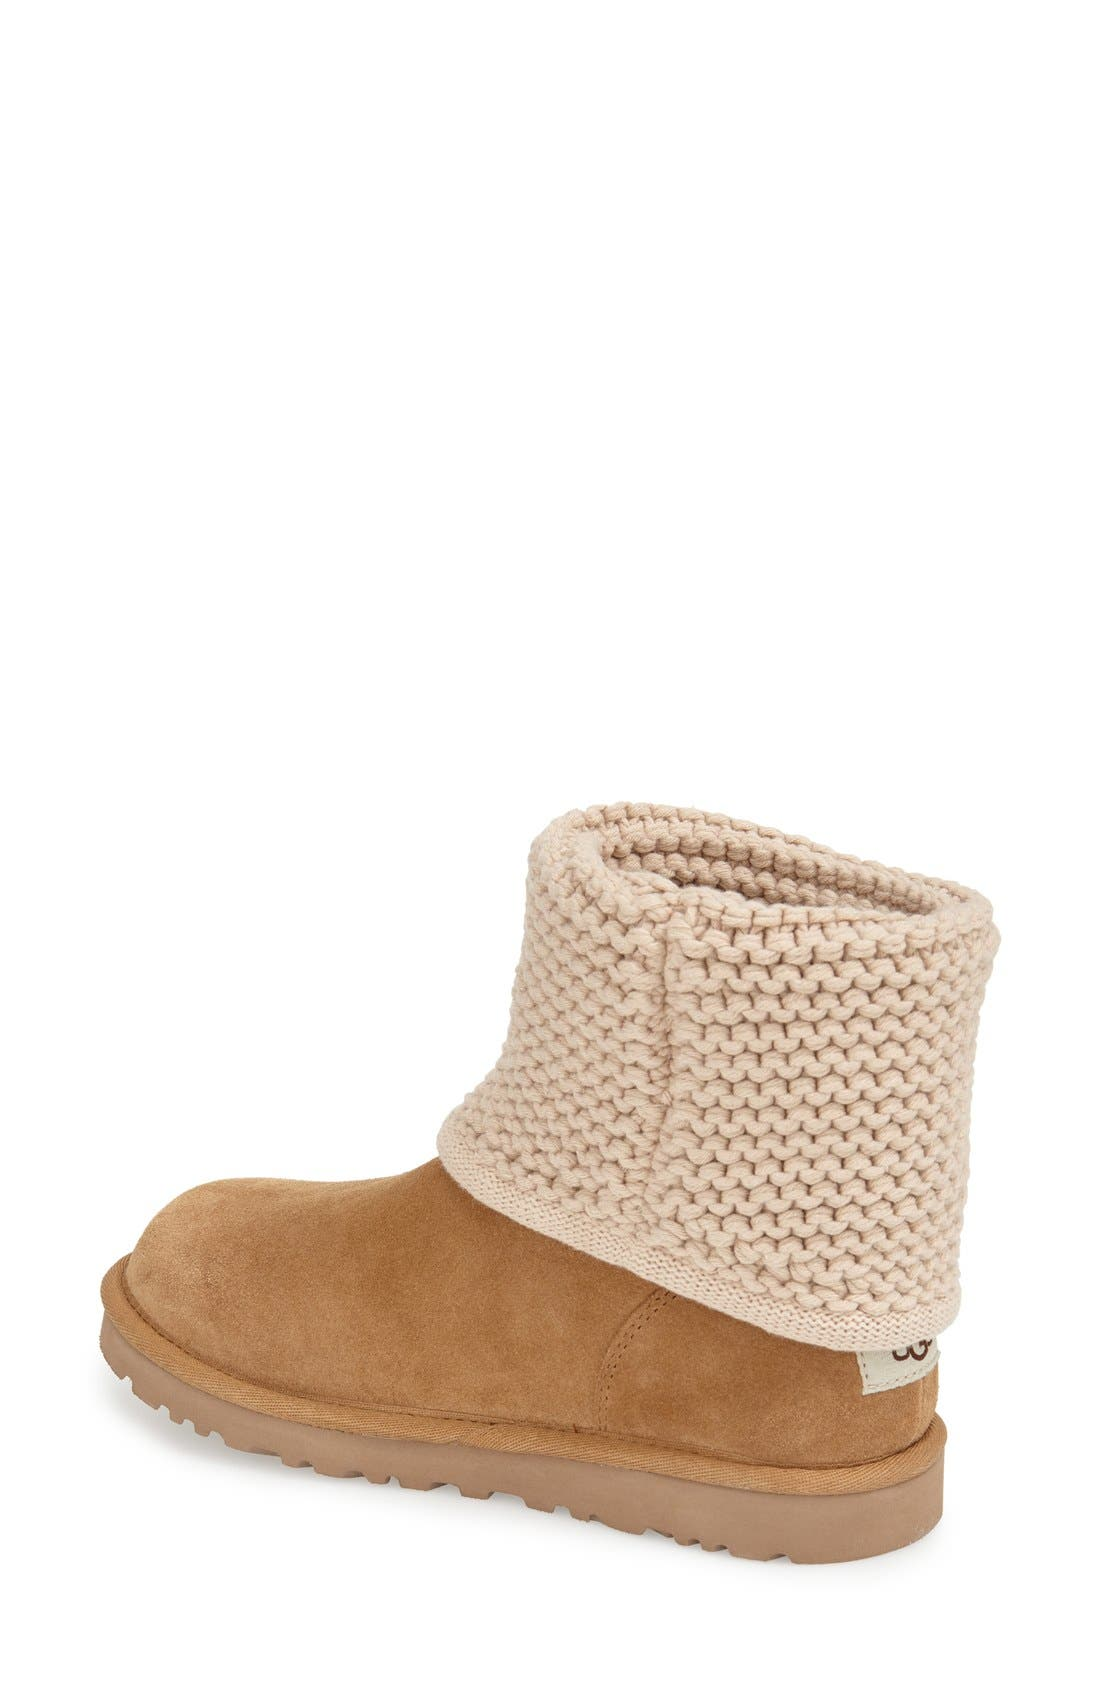 Shaina Knit Cuff Bootie,                             Alternate thumbnail 7, color,